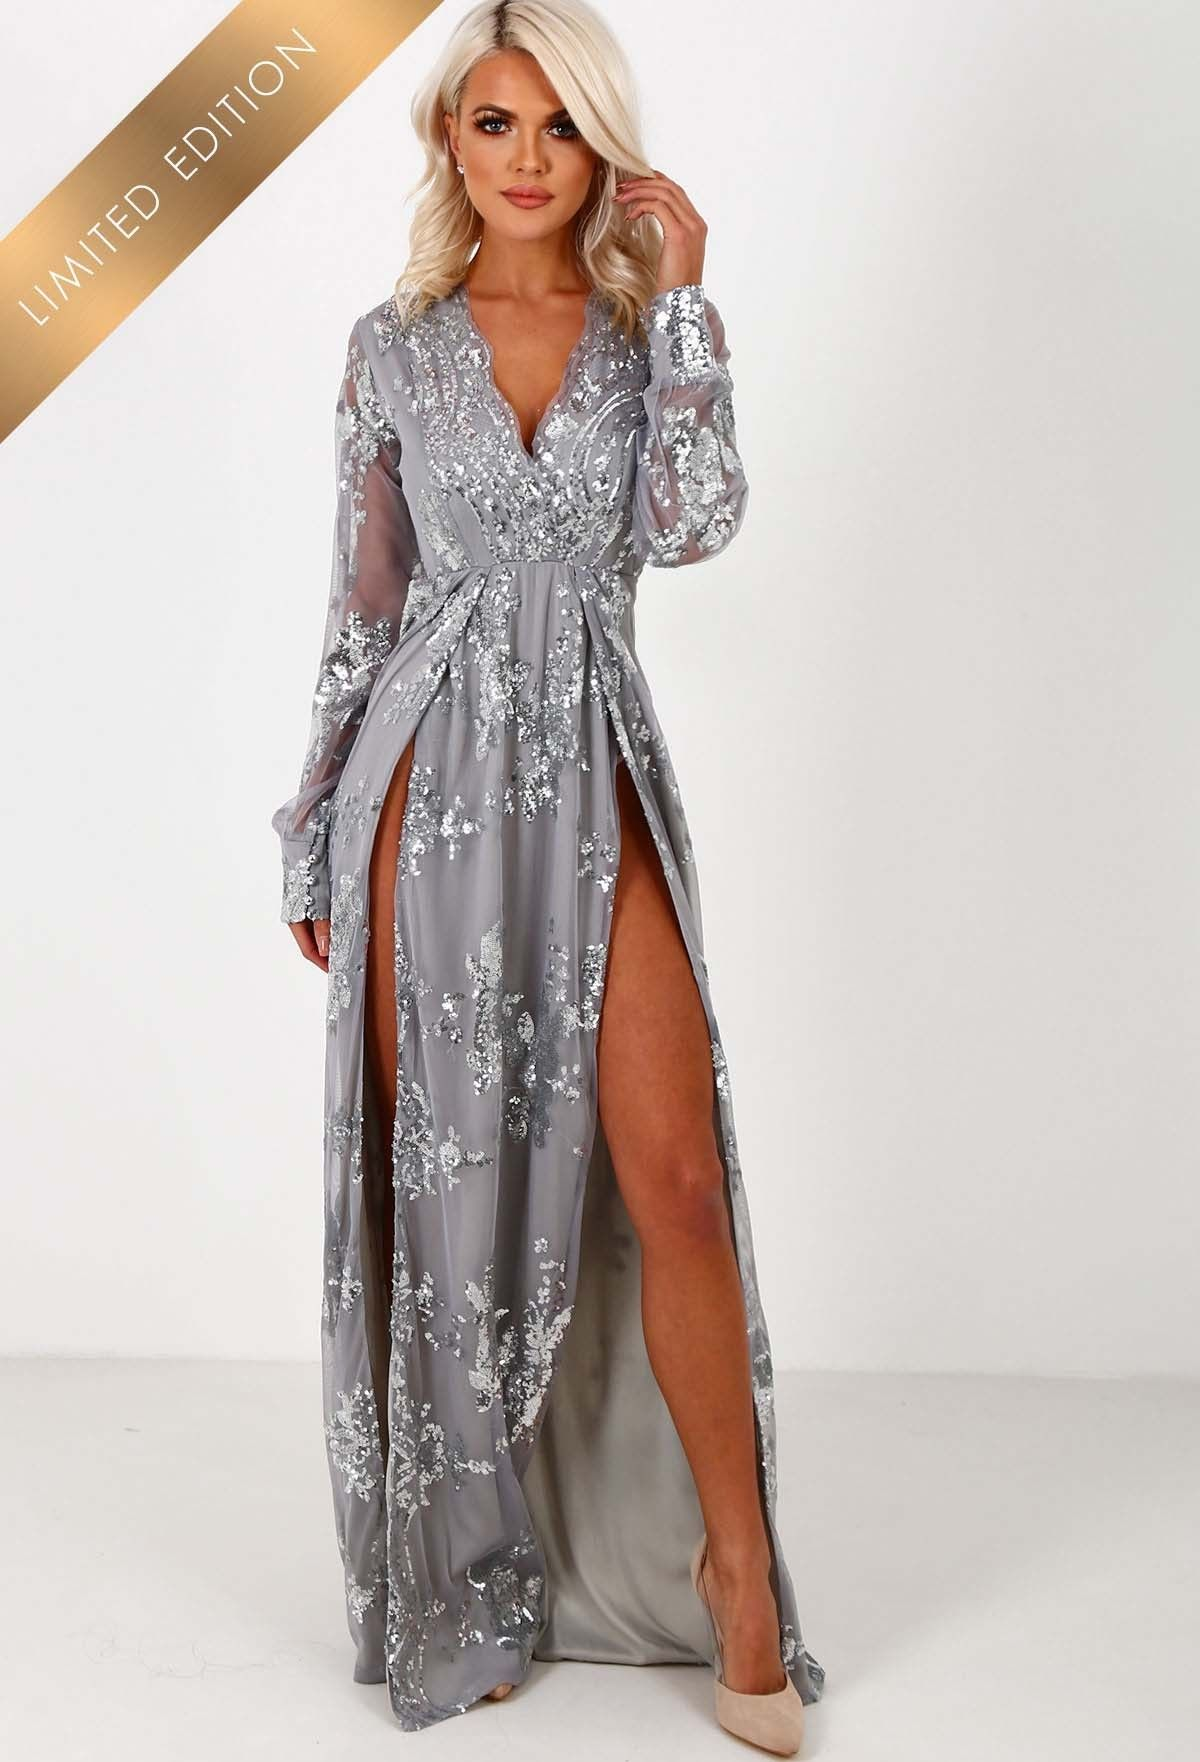 Limited Edition Everlasting Silver Sequin Long Sleeve Maxi Dress ...